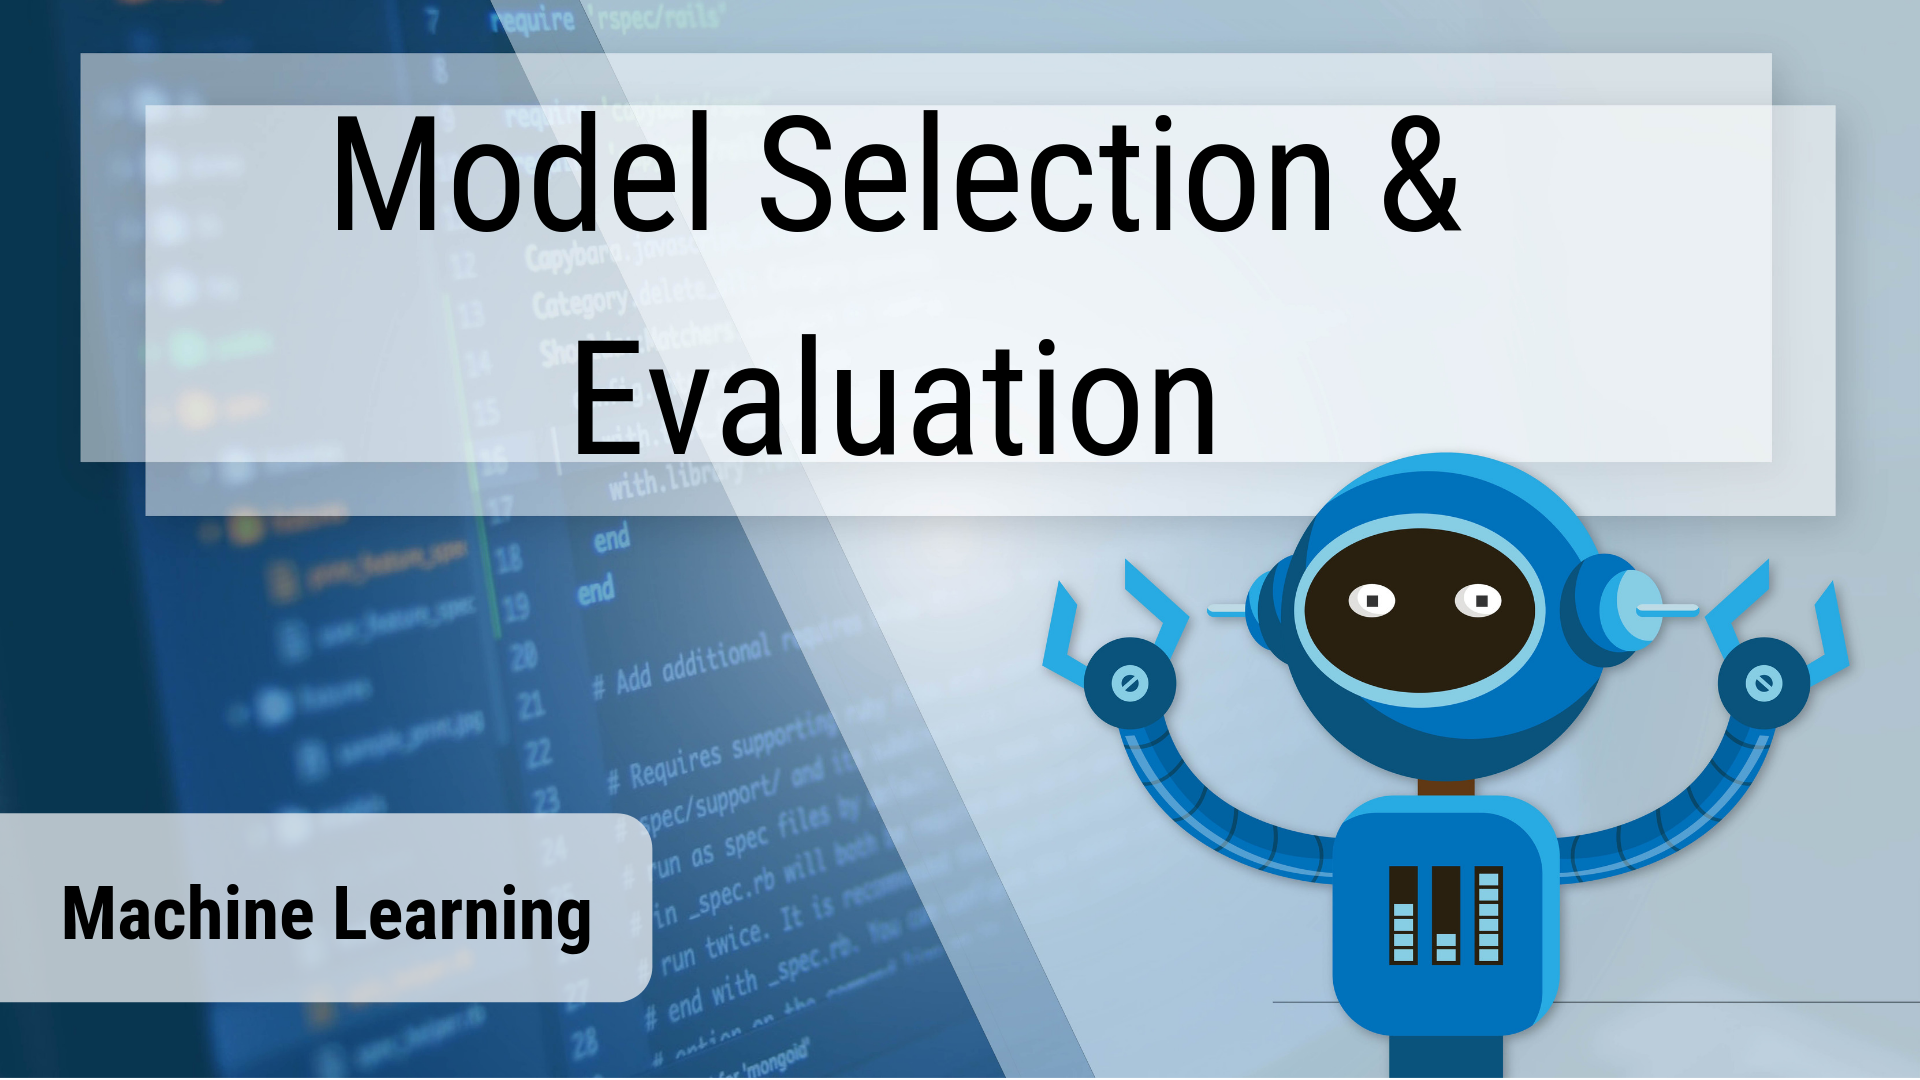 Model Selection & Evaluation